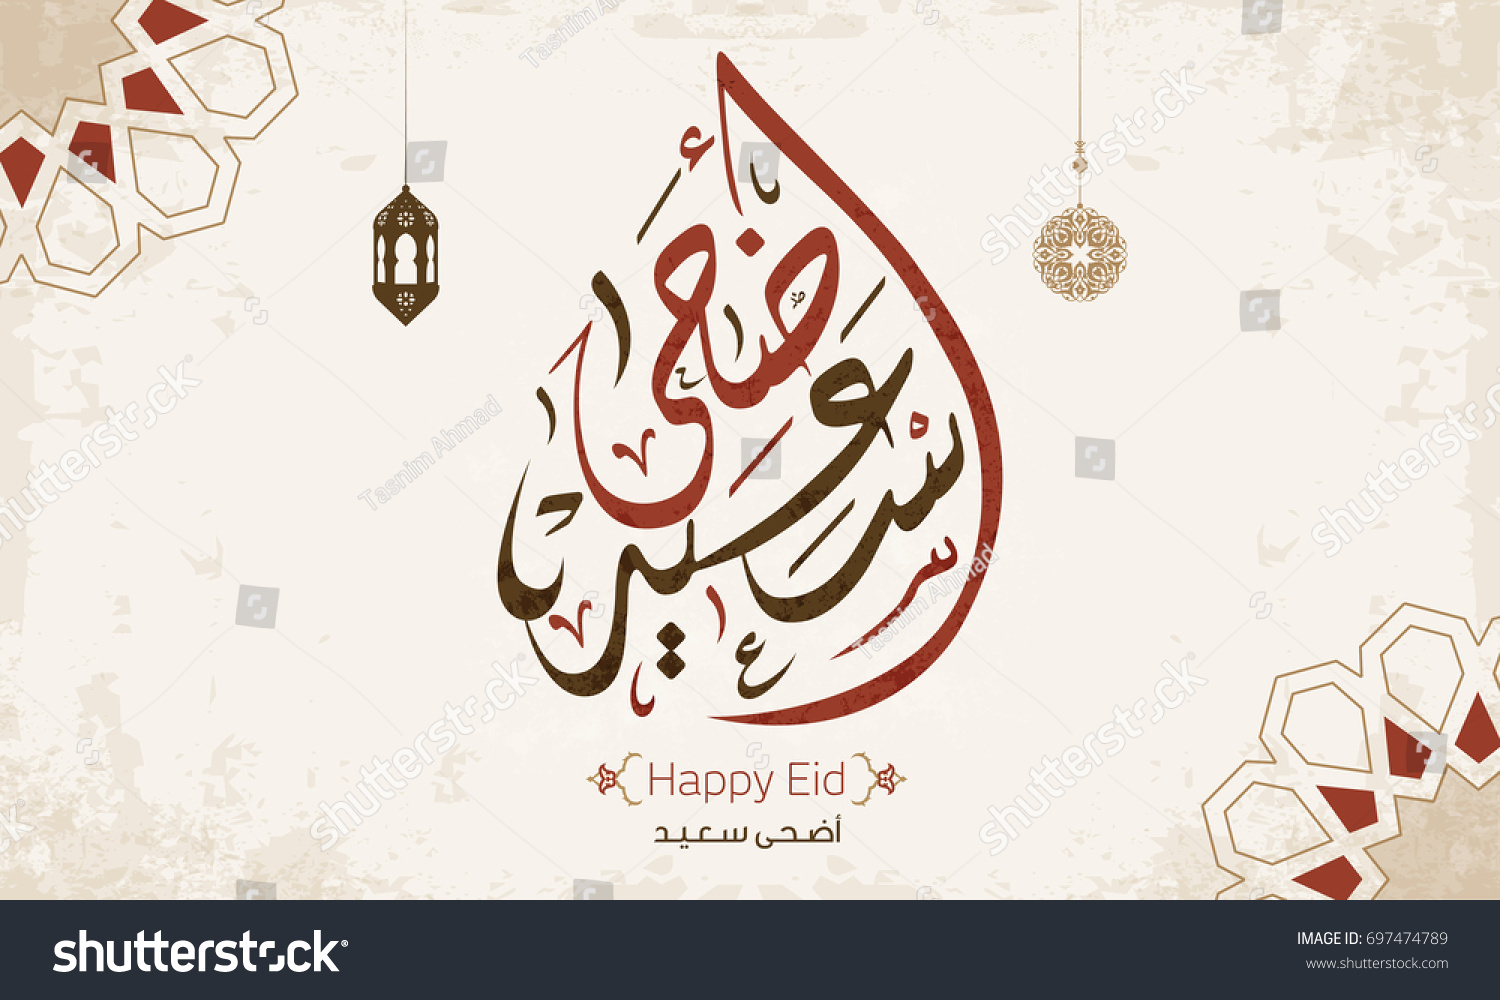 Happy eid greeting card arabic calligraphy stock vector 697474789 happy eid greeting card in arabic calligraphy style kristyandbryce Choice Image